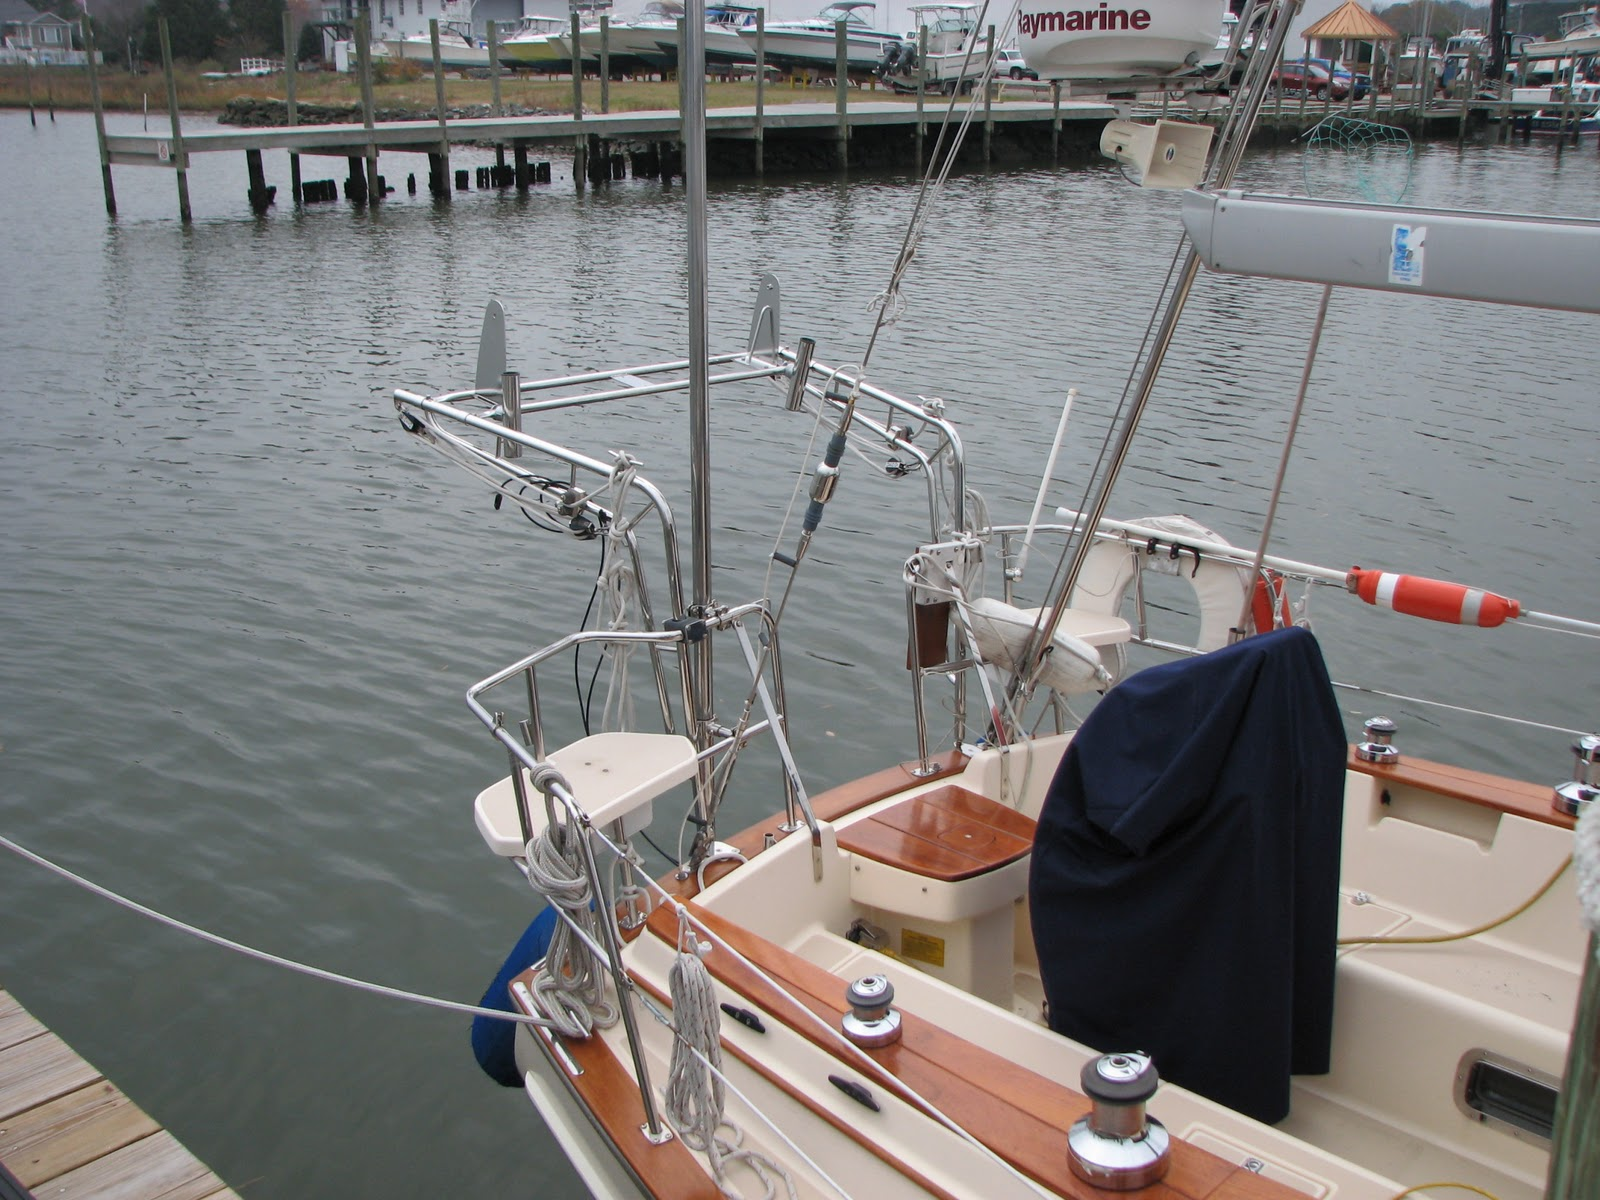 Marine solar panel installations first mate marine inc - The Panels Attached To The Support Bars With Pivot Hardware Will Attach To The Supports Mounted On The Kato Dinghy Davits We Just Have To Thread The